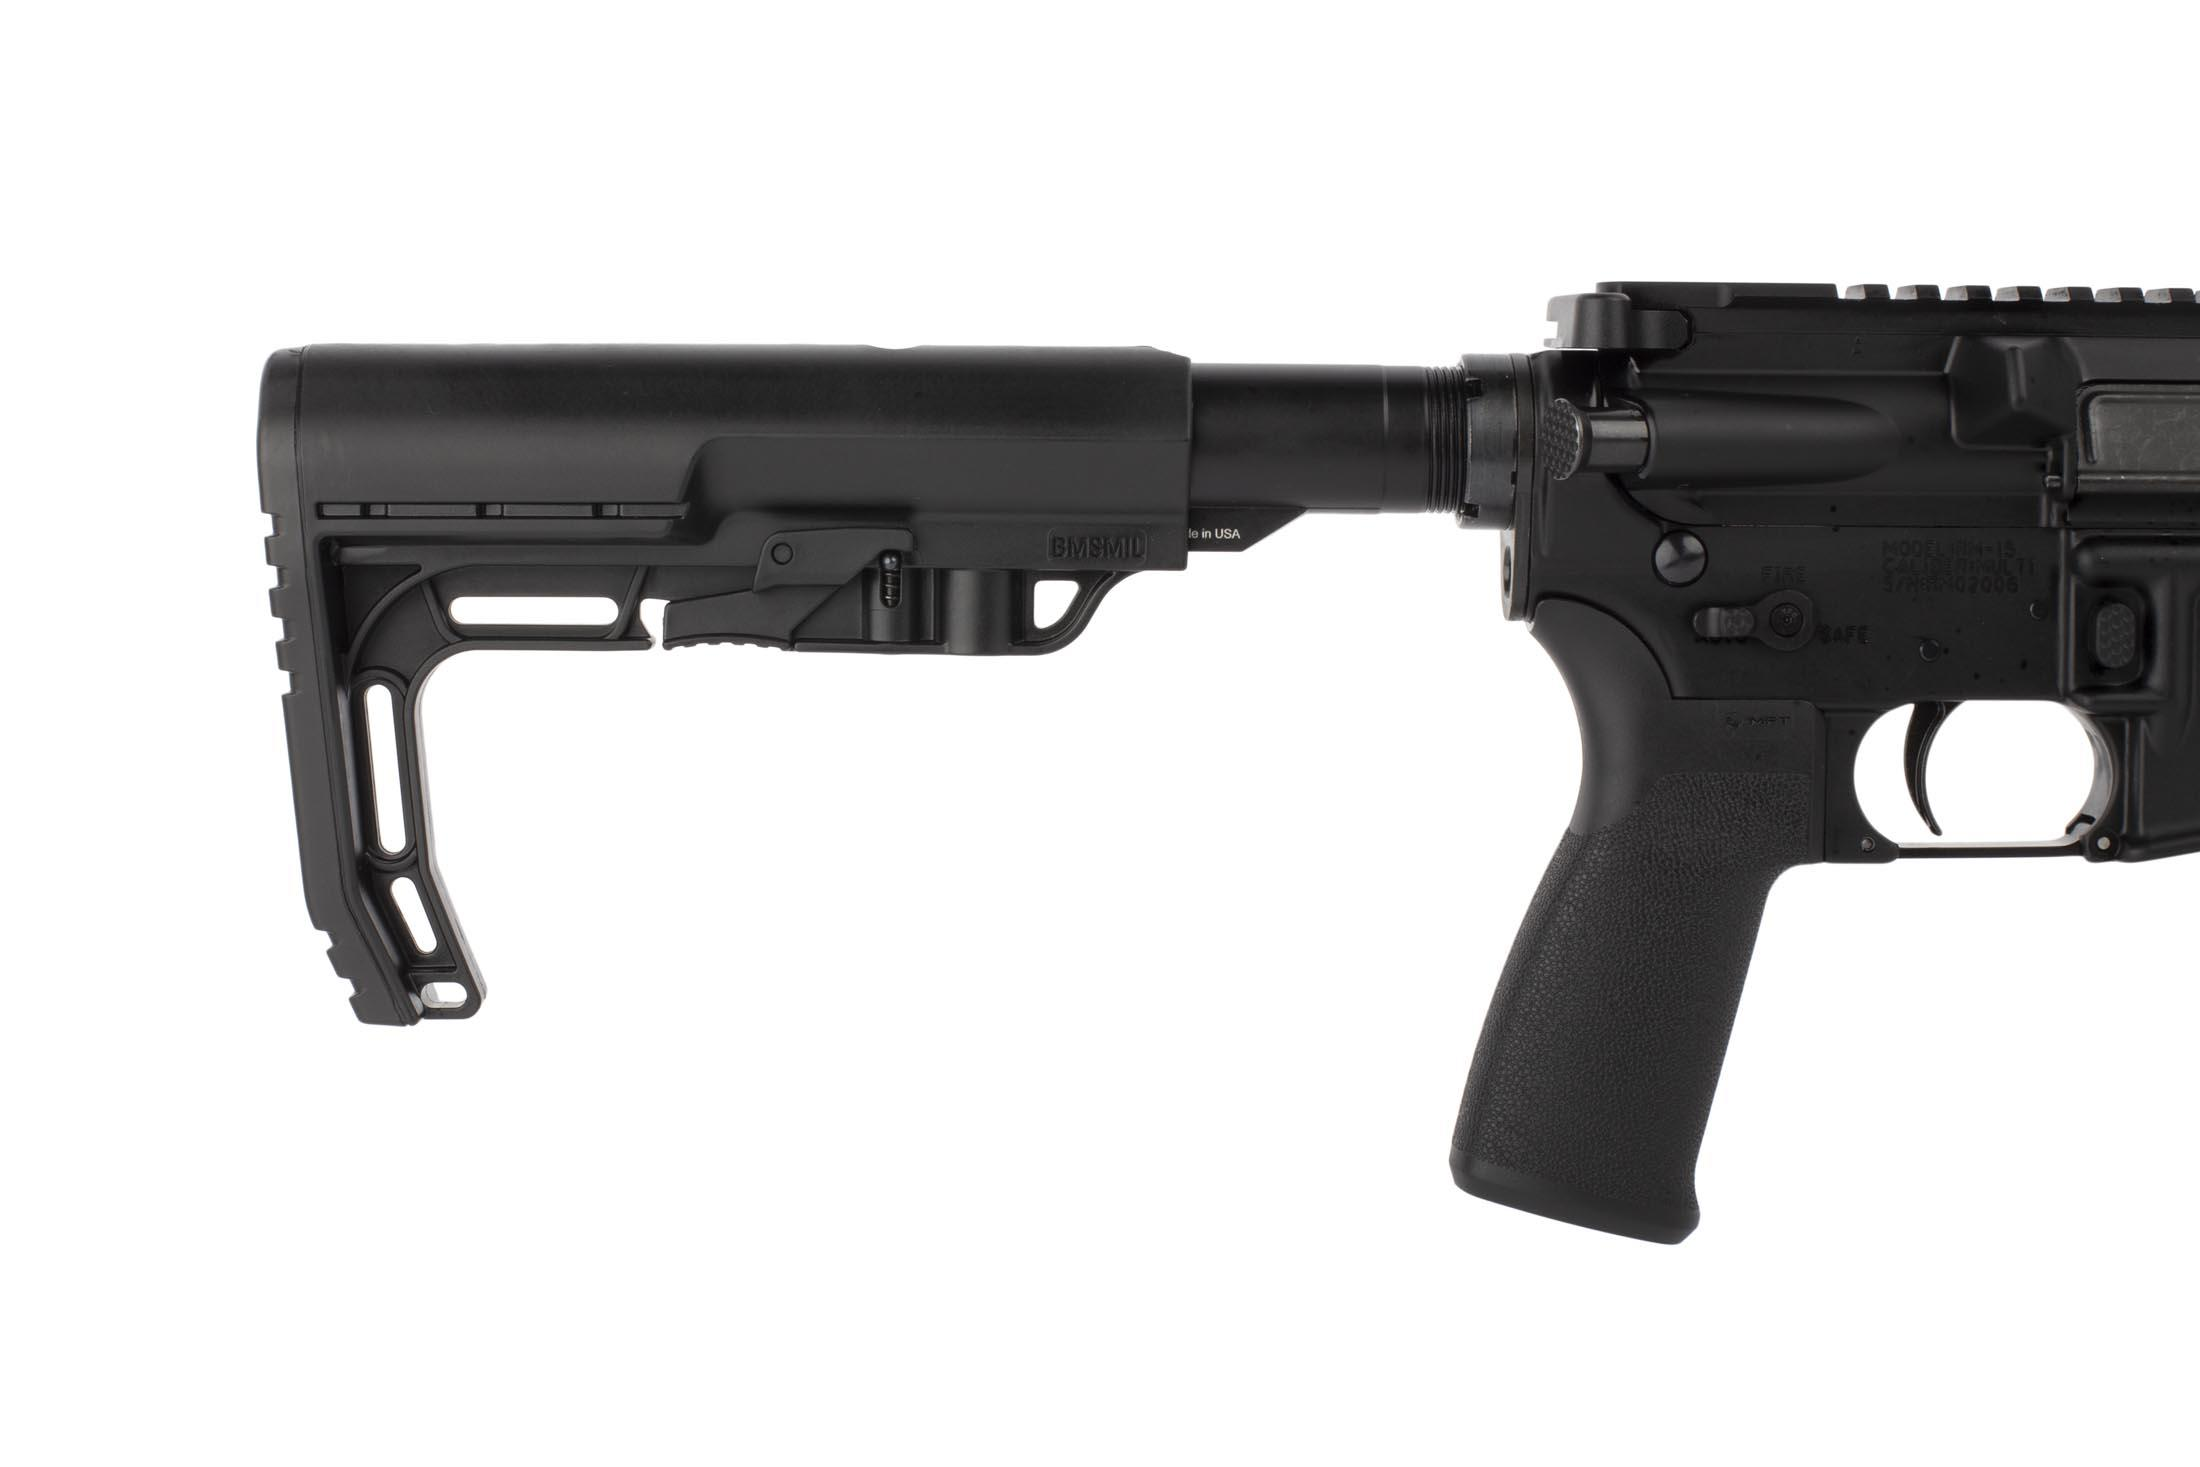 Radical Firearms .223 Wylde 18in AR is equipped with ambidextrous safety selector, enhanced magazine release, and carbine stock